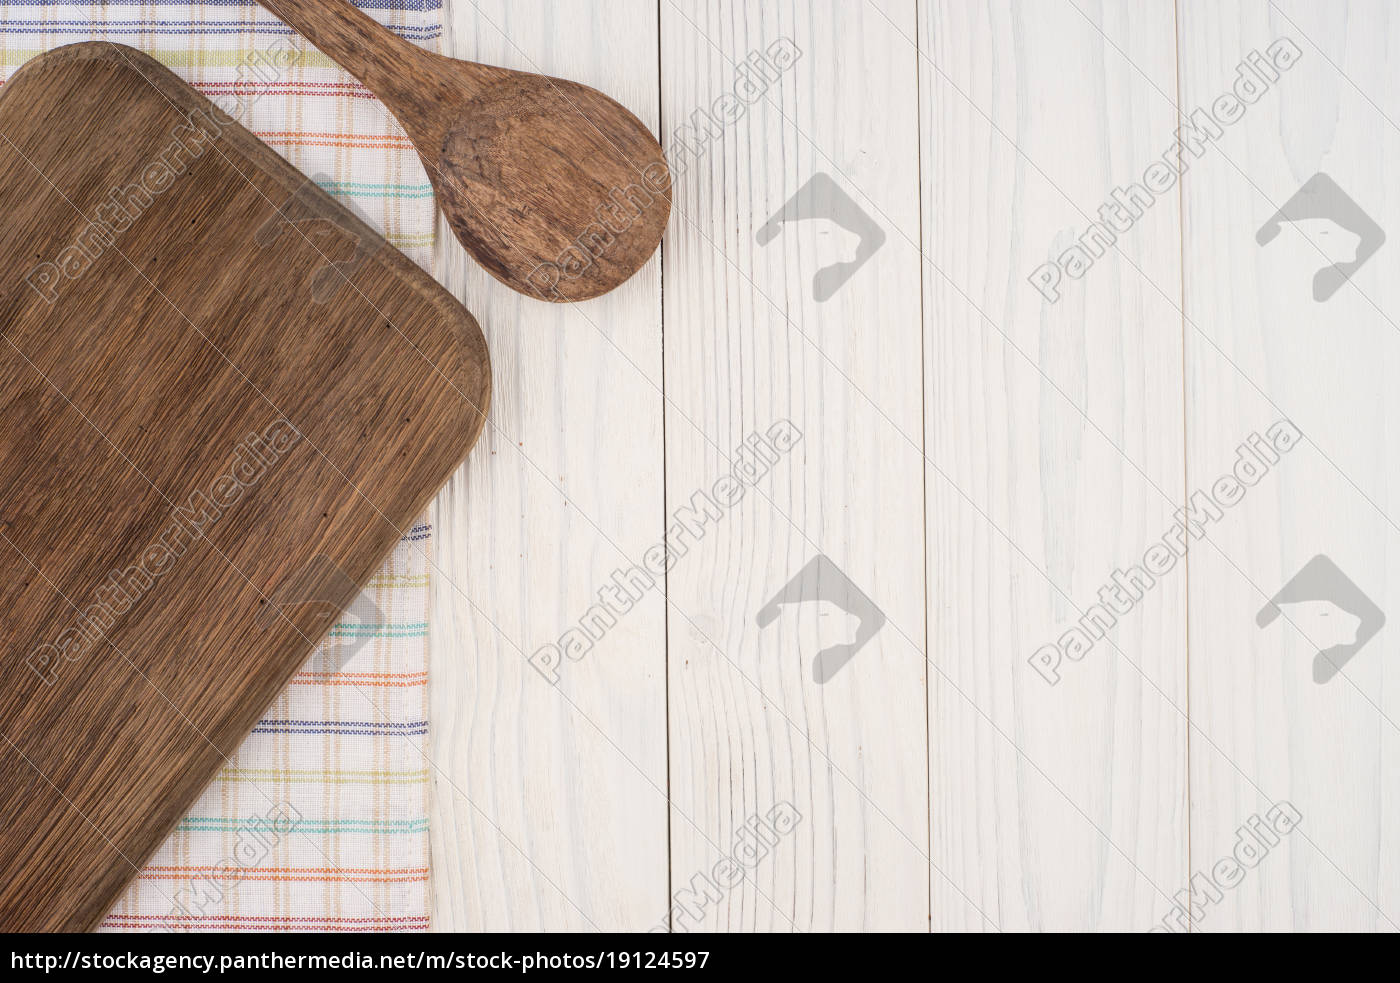 Stock Photo 19124597 - Cutting board and a spoon on a kitchen napkin on old  wooden